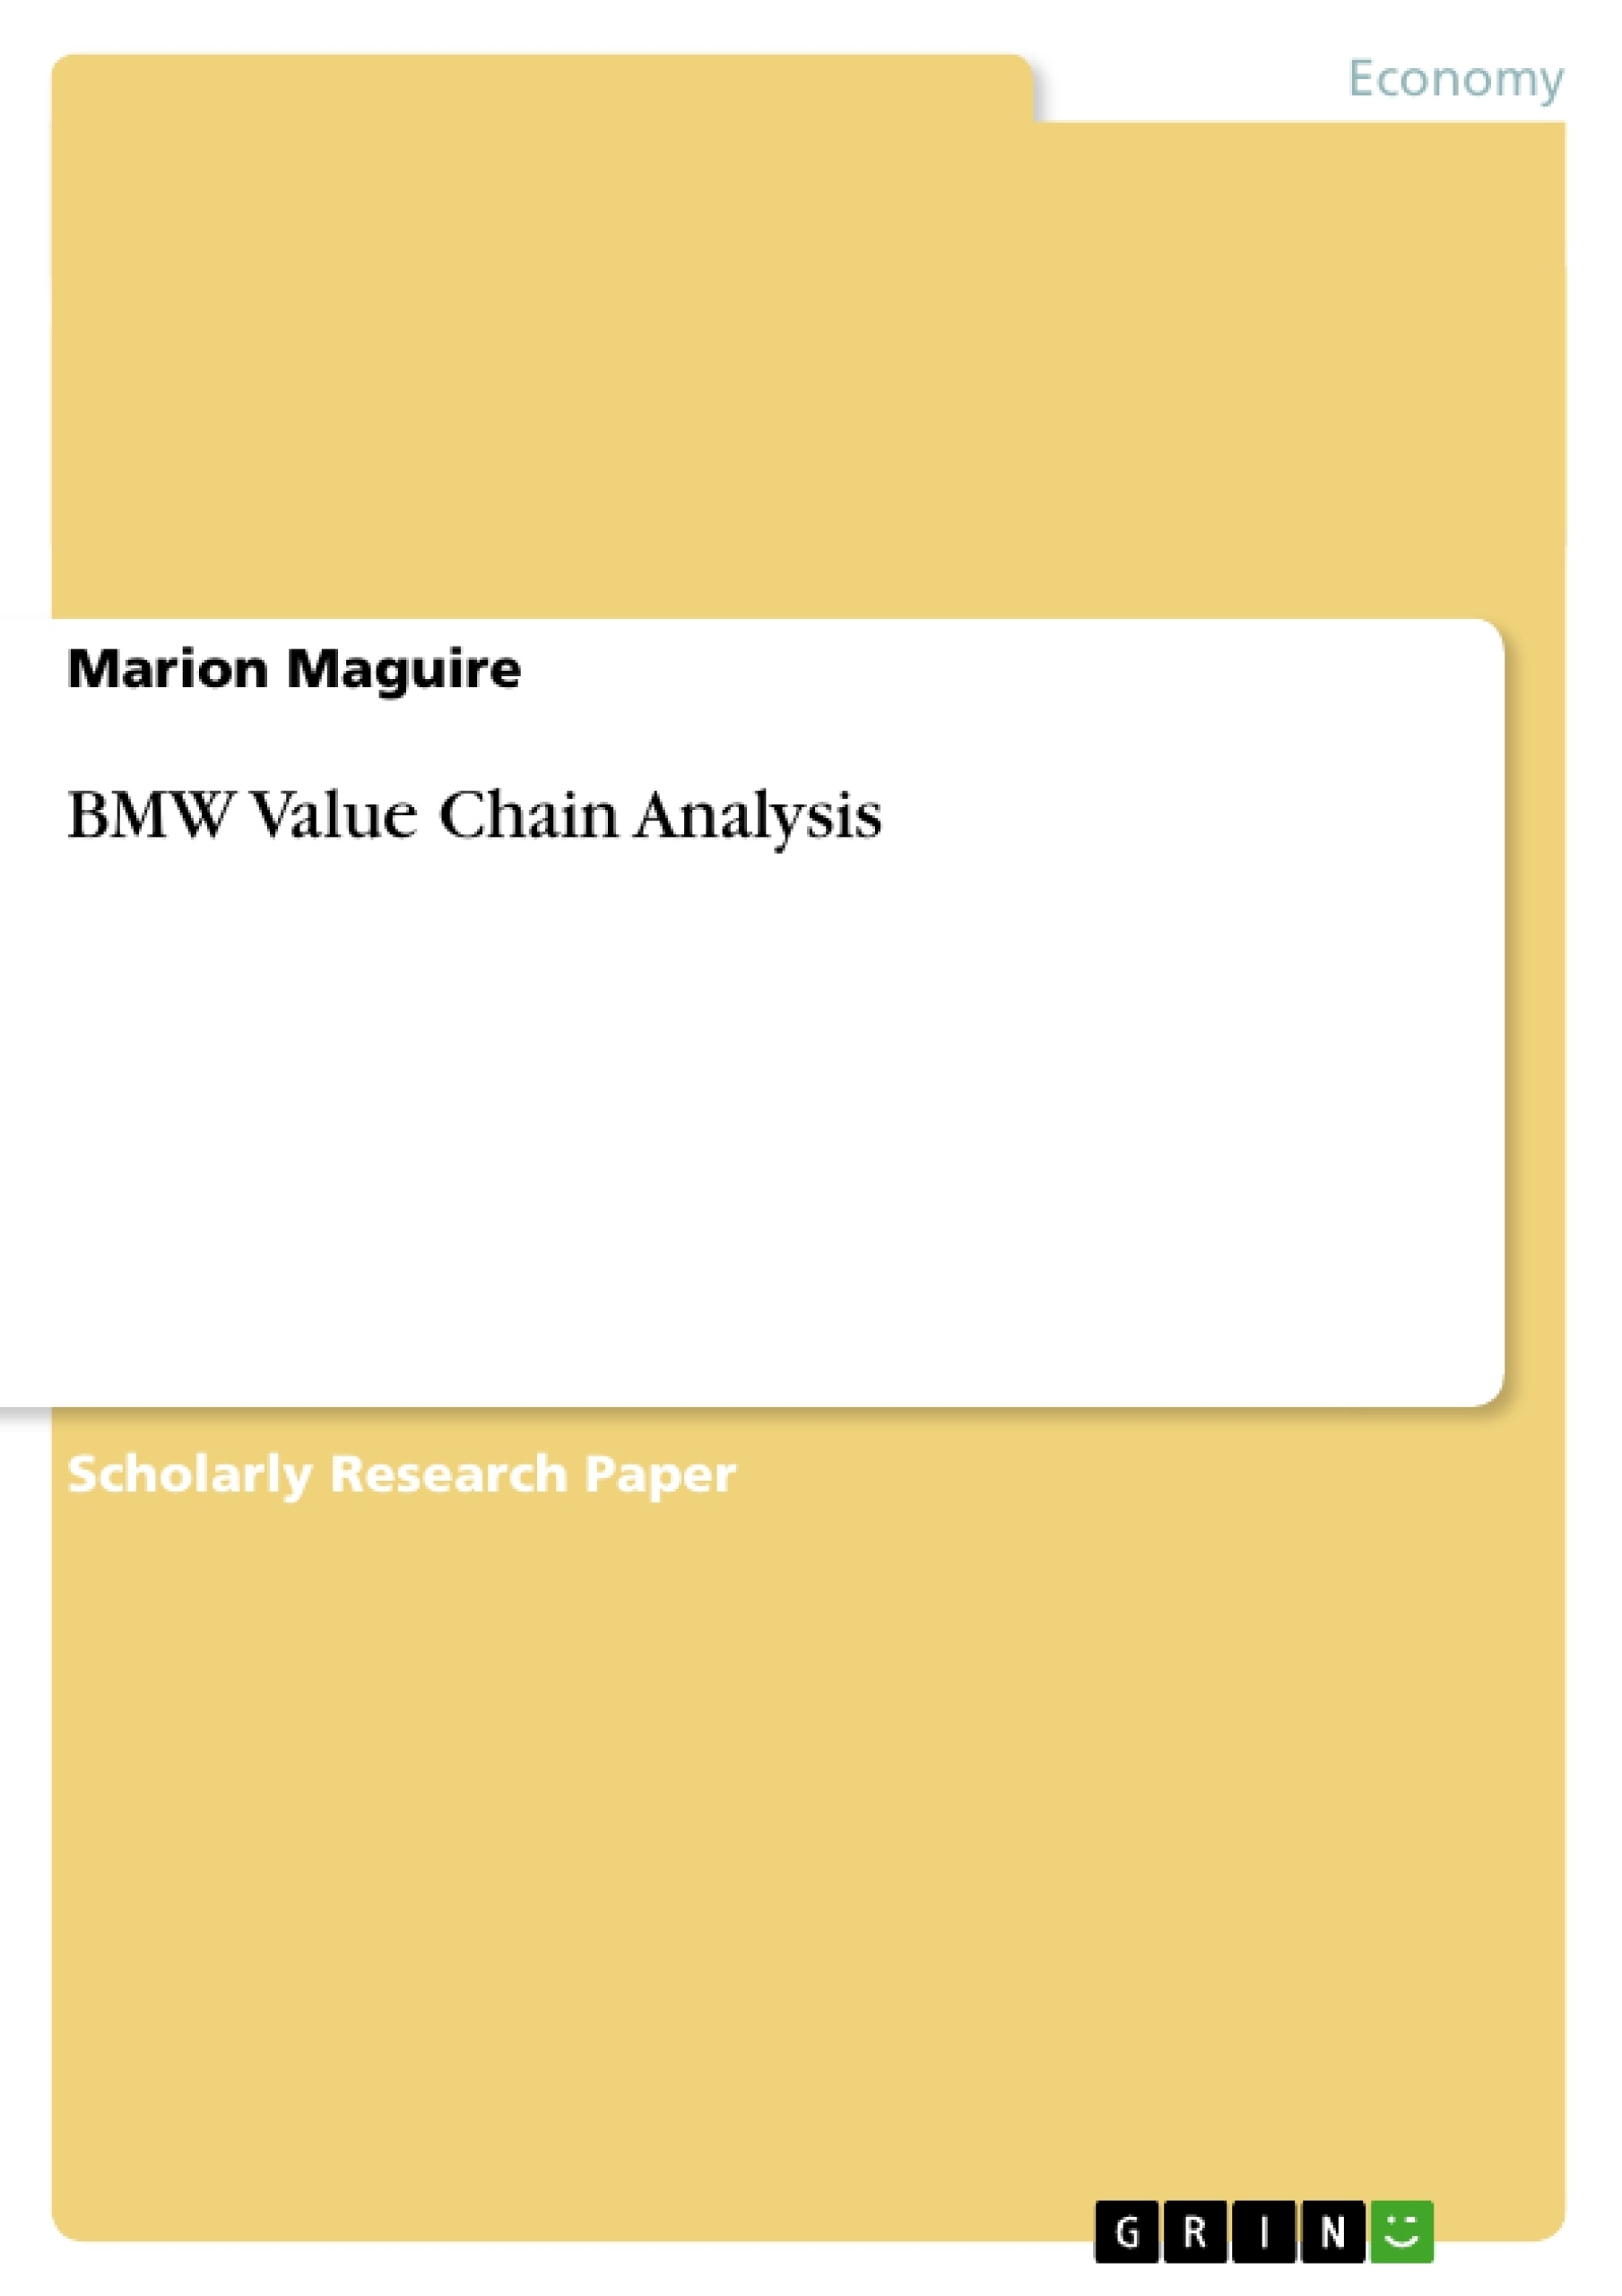 business strategy bmw essay Marketing strategy research paper starter  empirically-based strategy for its unique  a good business strategy is based on the rigorous analysis of.